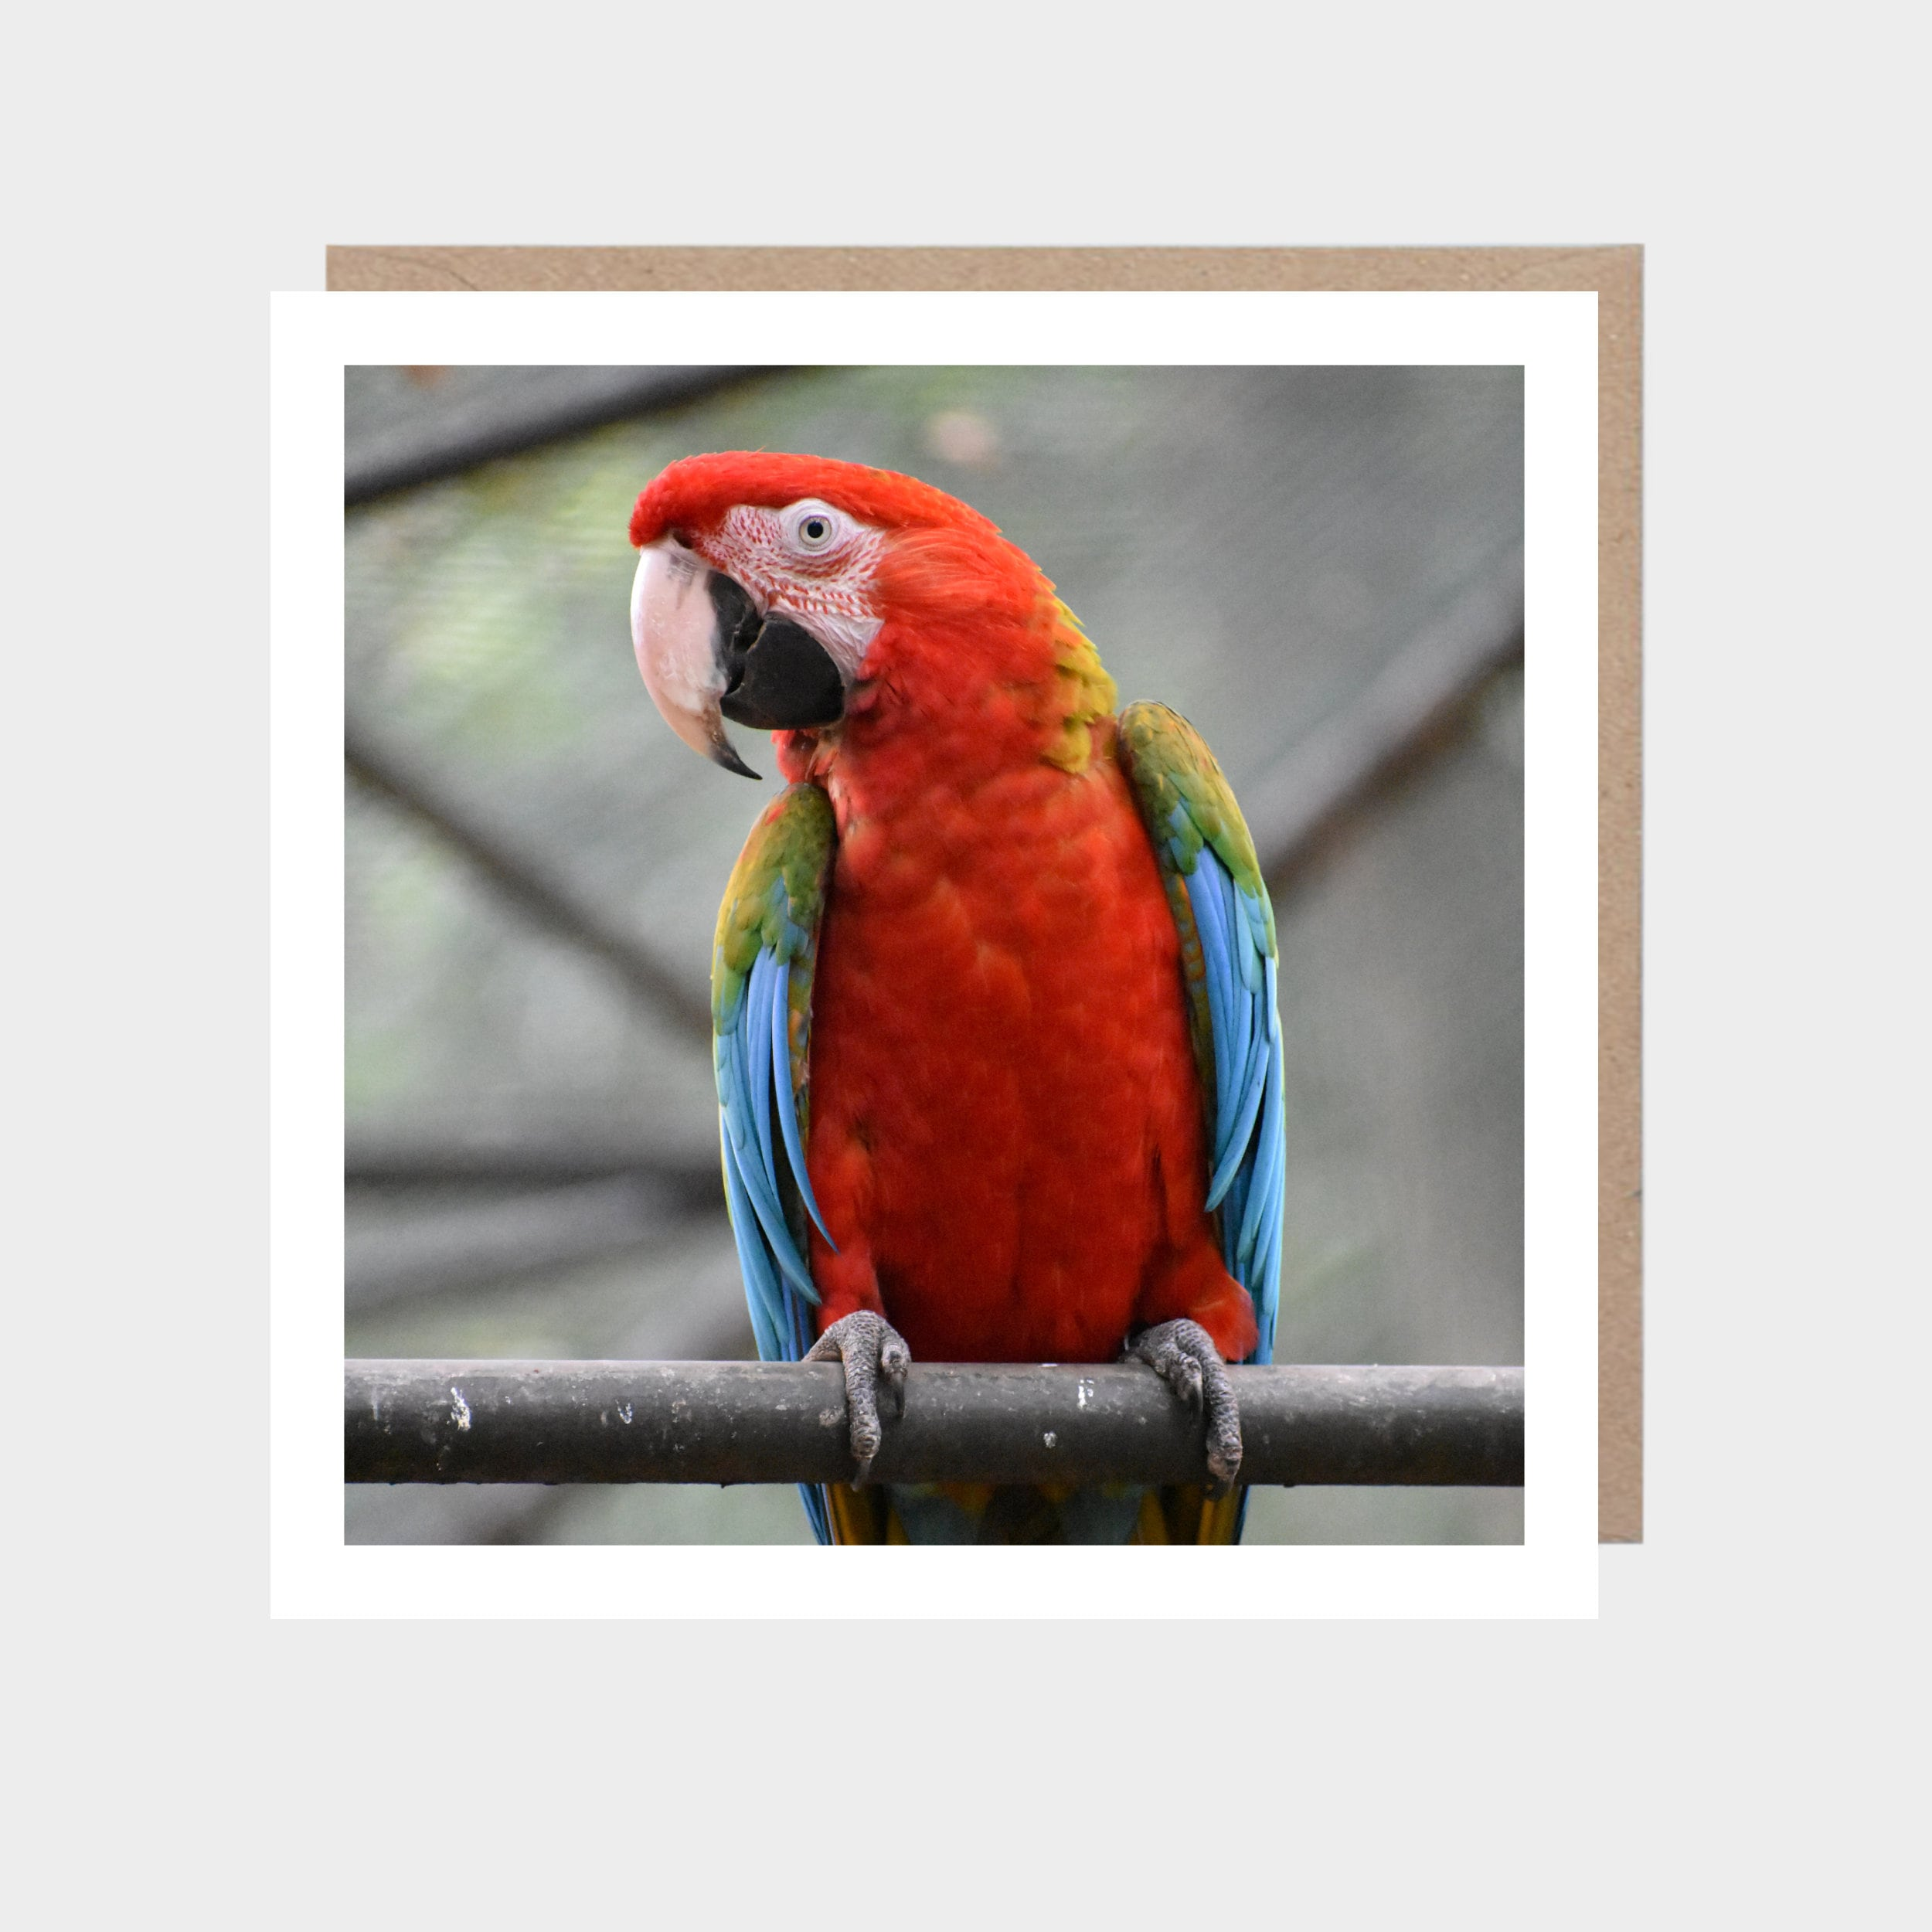 Square card with a close-up photo of a parrot, with a brown kraft envelope